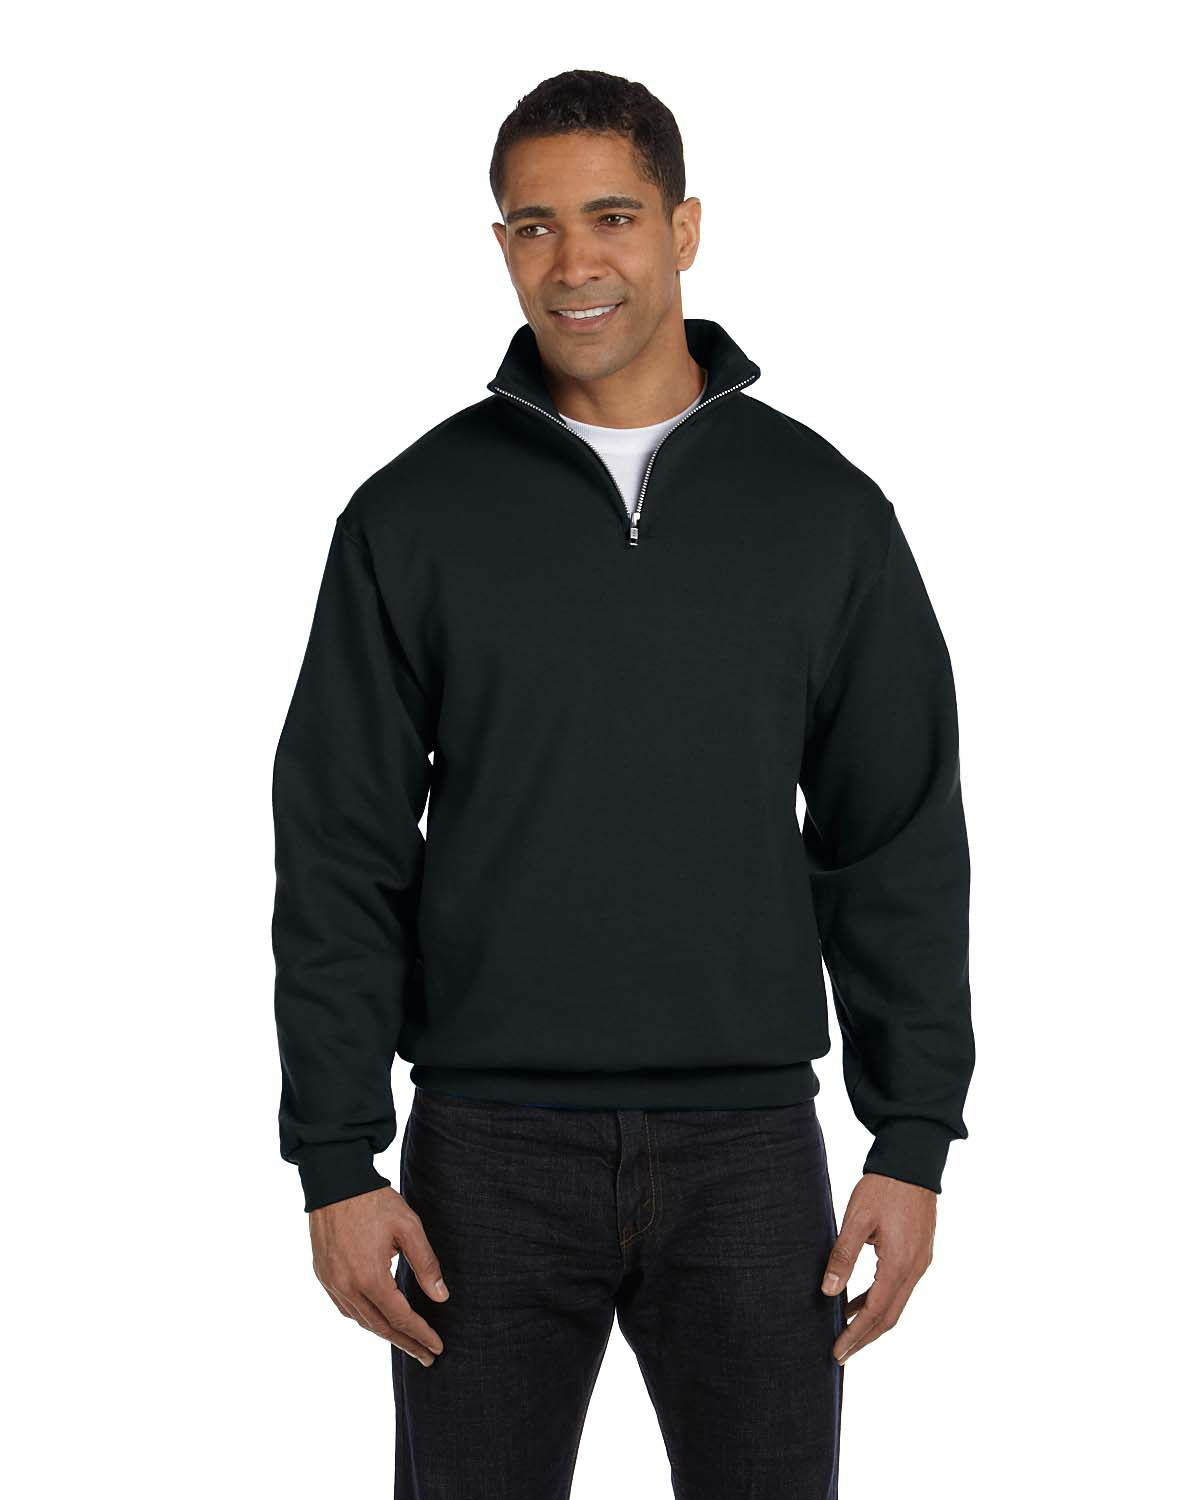 JERZEES 995M - 8 Ounce 50/50 Cadet Collar Sweatshirt